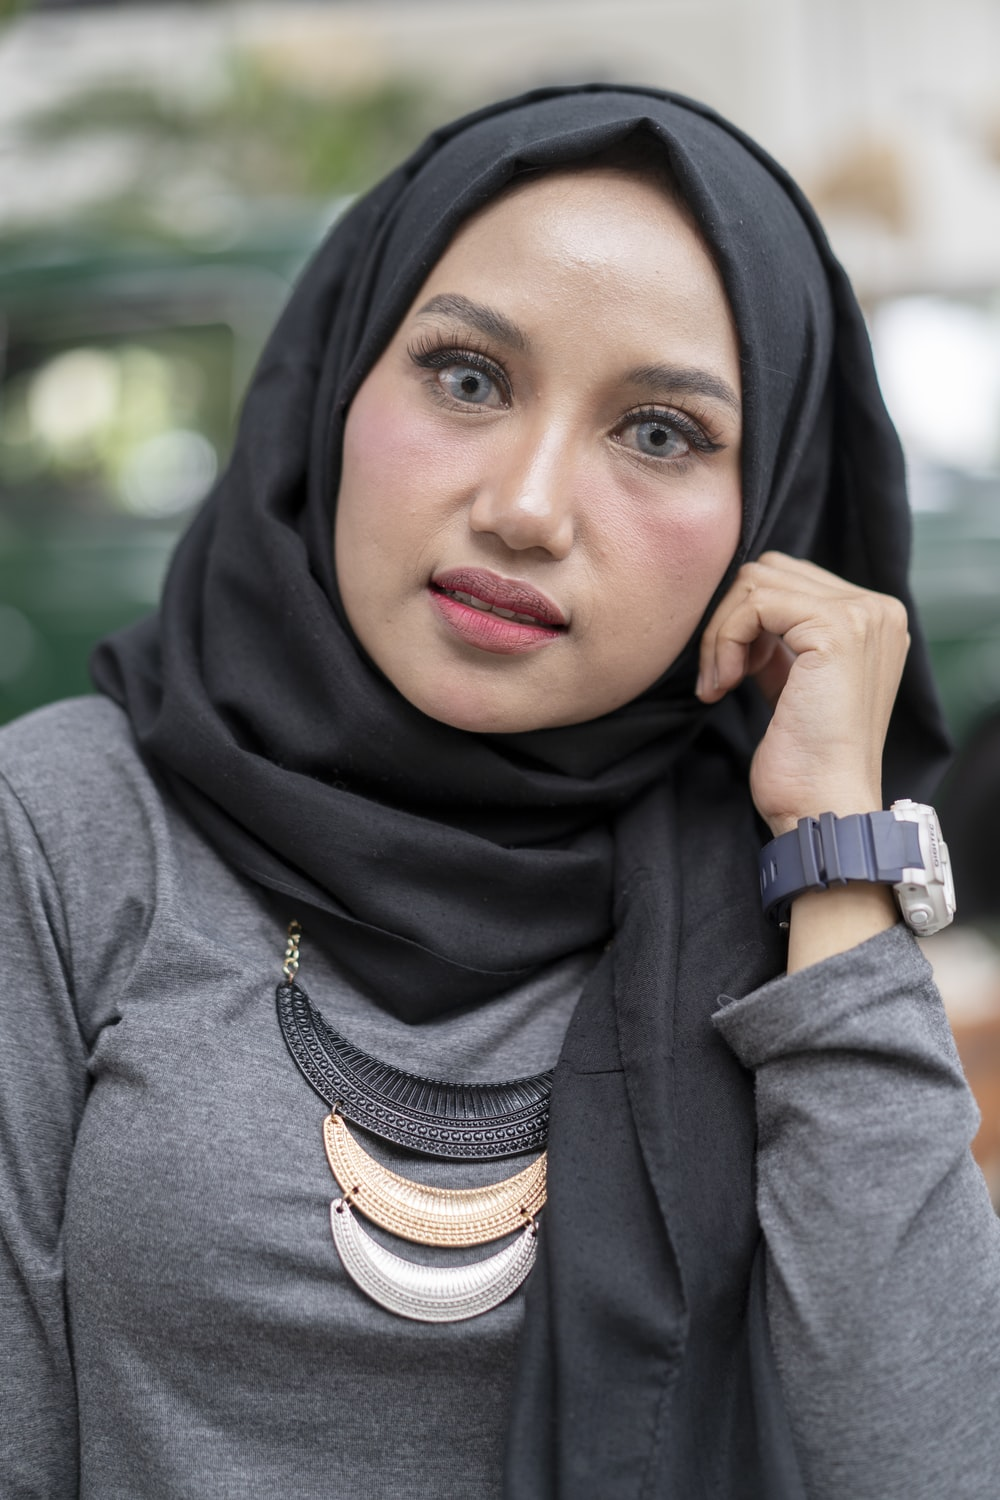 woman wearing gray long-sleeved top and black hijab